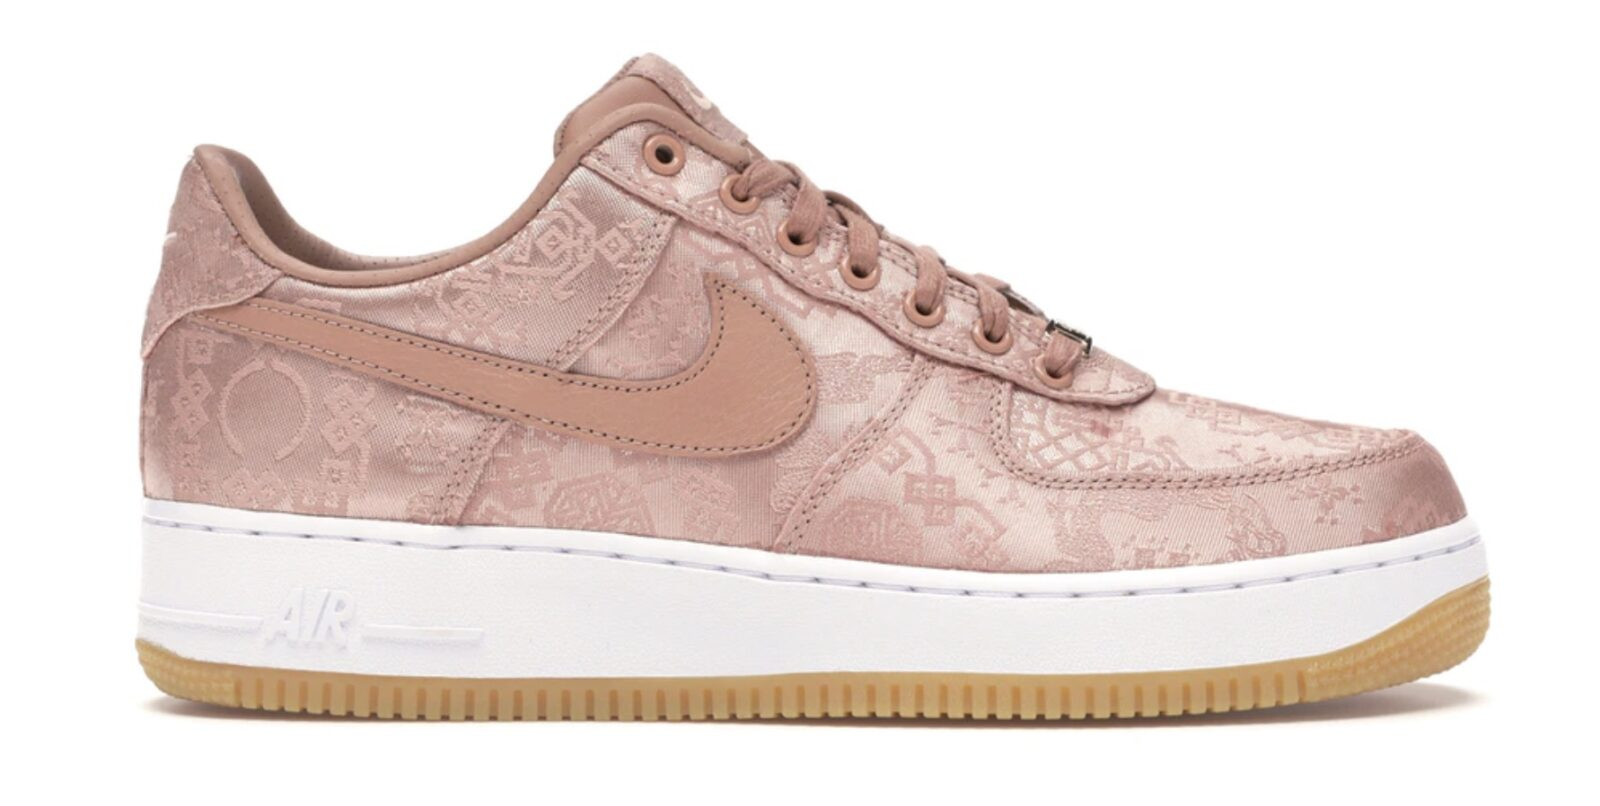 CLOT x Nike Air Force 1 Low Rose Gold Silk